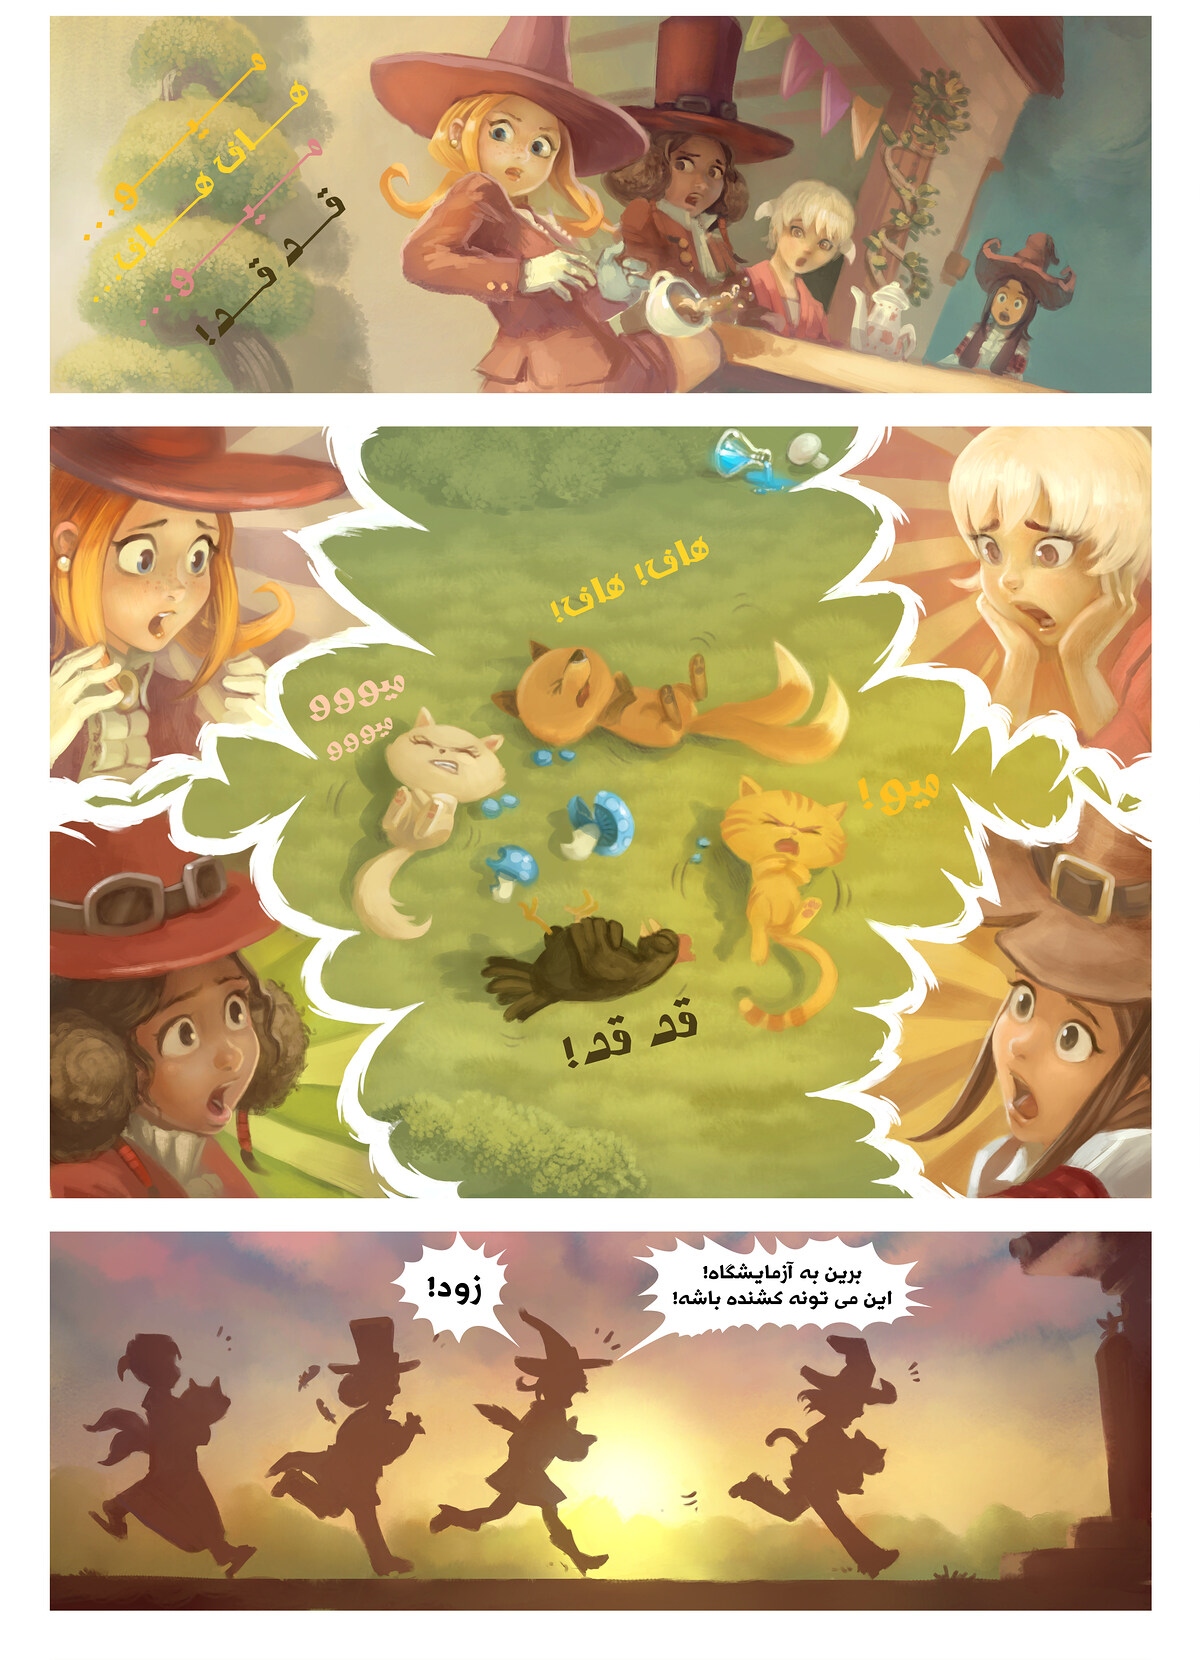 A webcomic page of Pepper&Carrot, episode 9 [fa], page 5